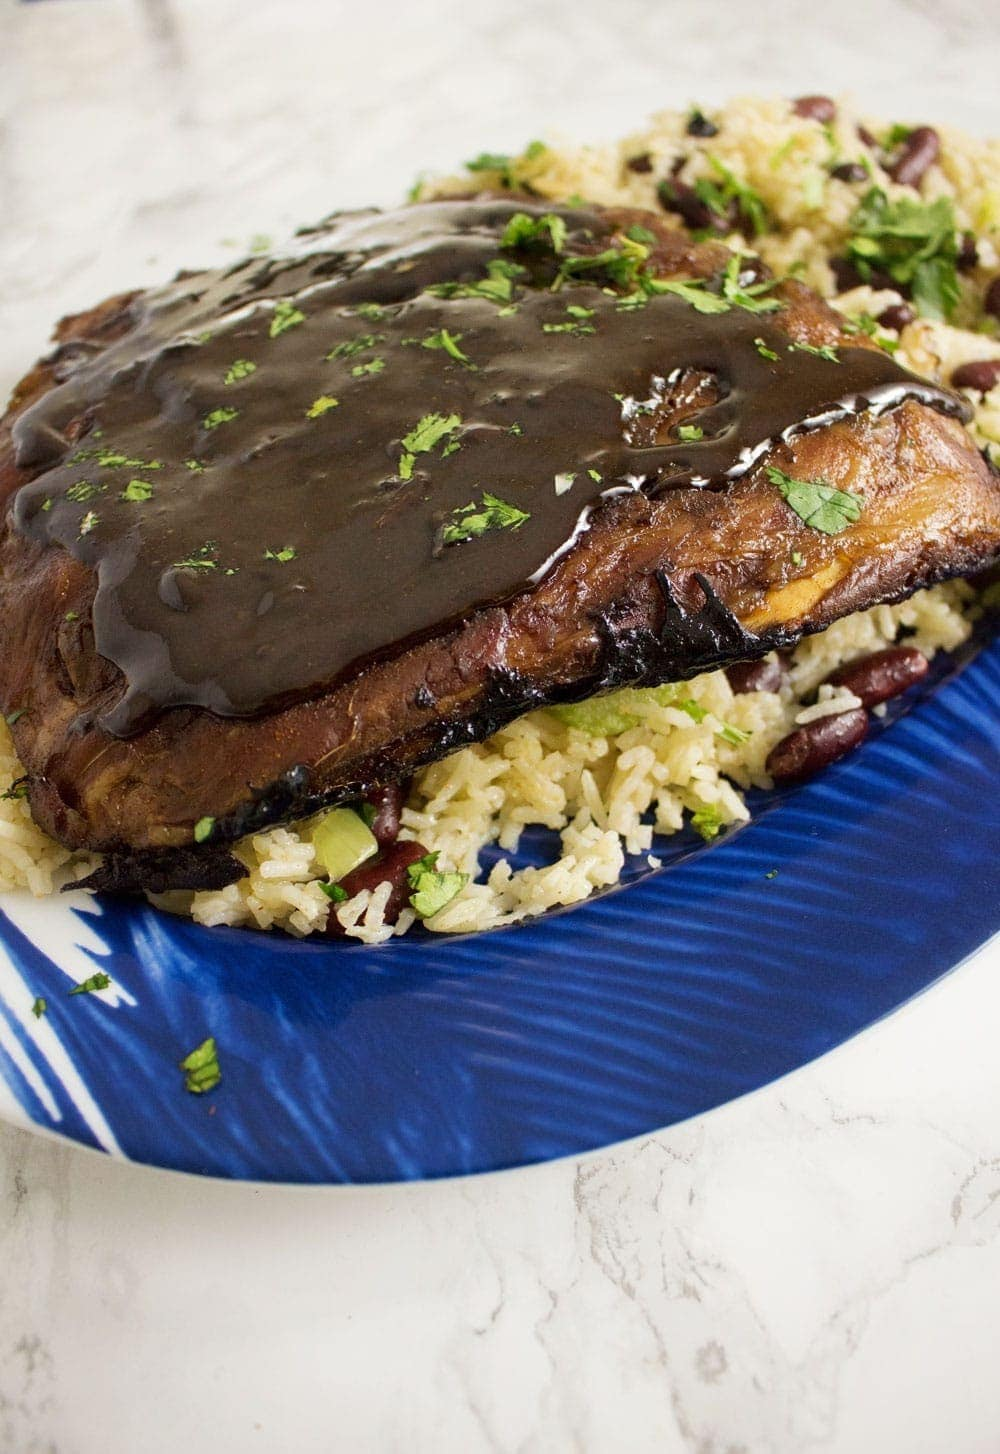 These sticky oven baked Cajun pork ribs are the perfect autumn dinner. Made with a brown sugar and spice dry rub and cooked in a flavourful braising liquid.